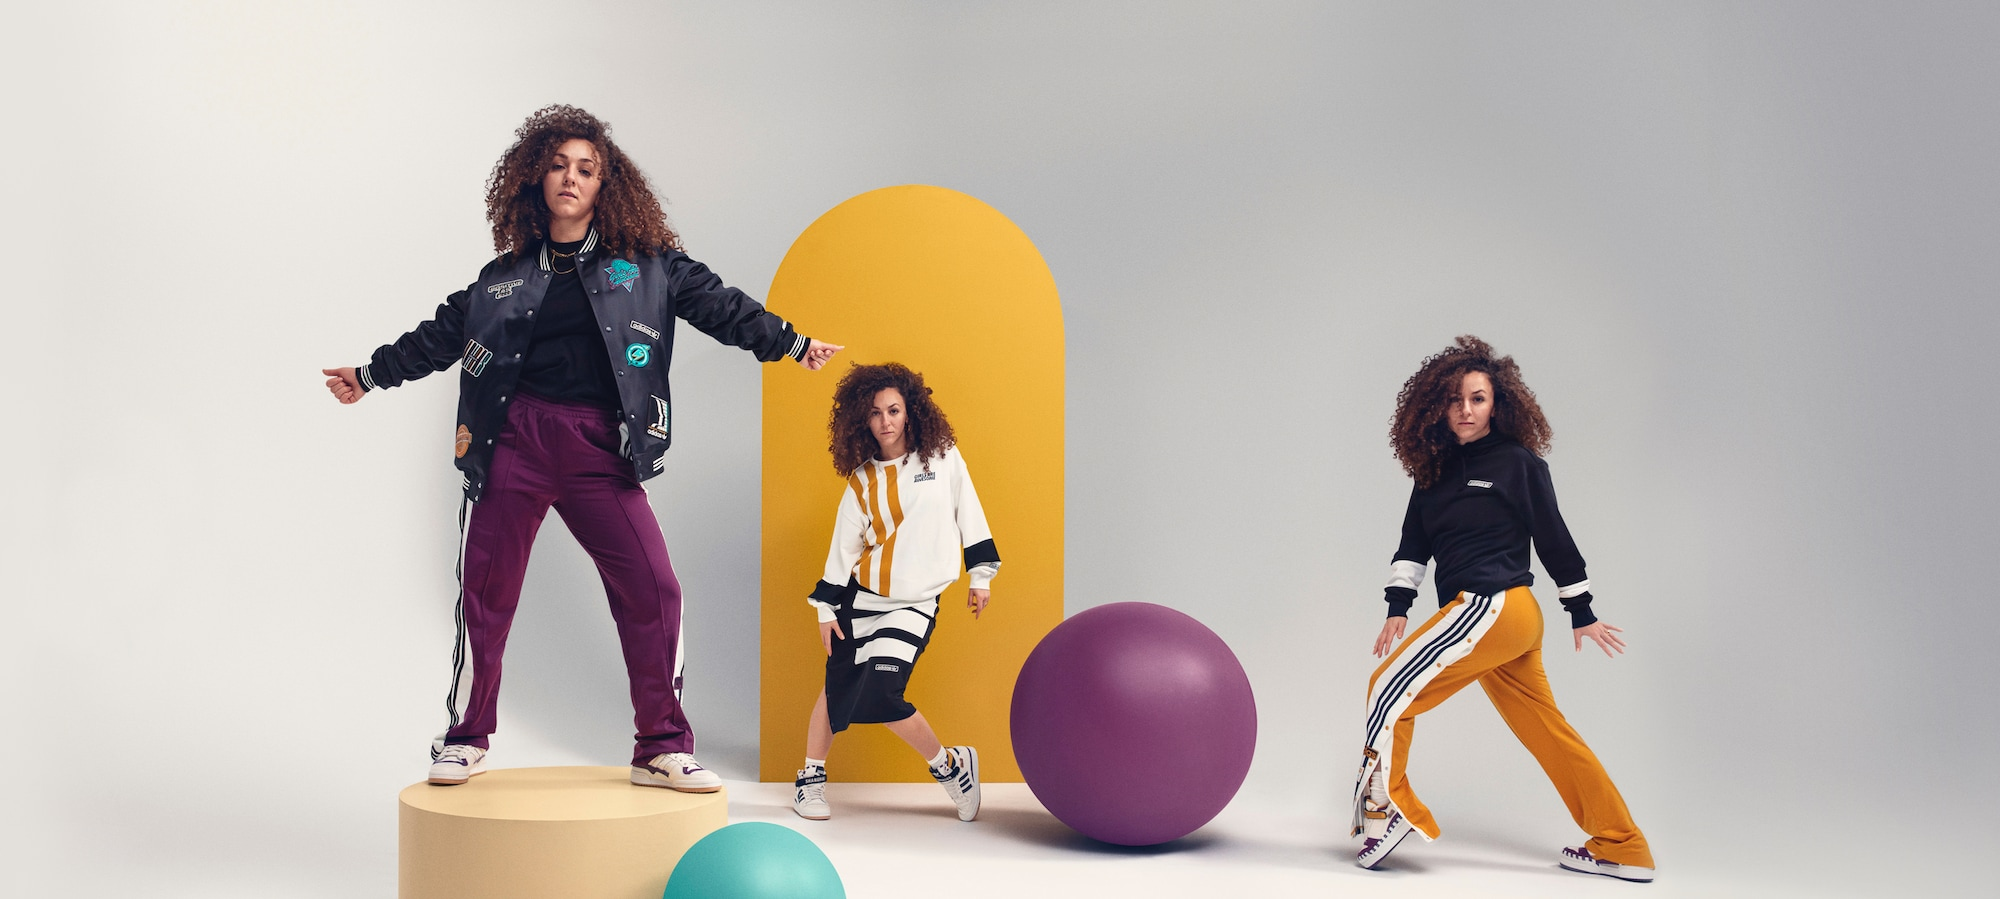 GIRLS ARE AWESOME adidas Originals